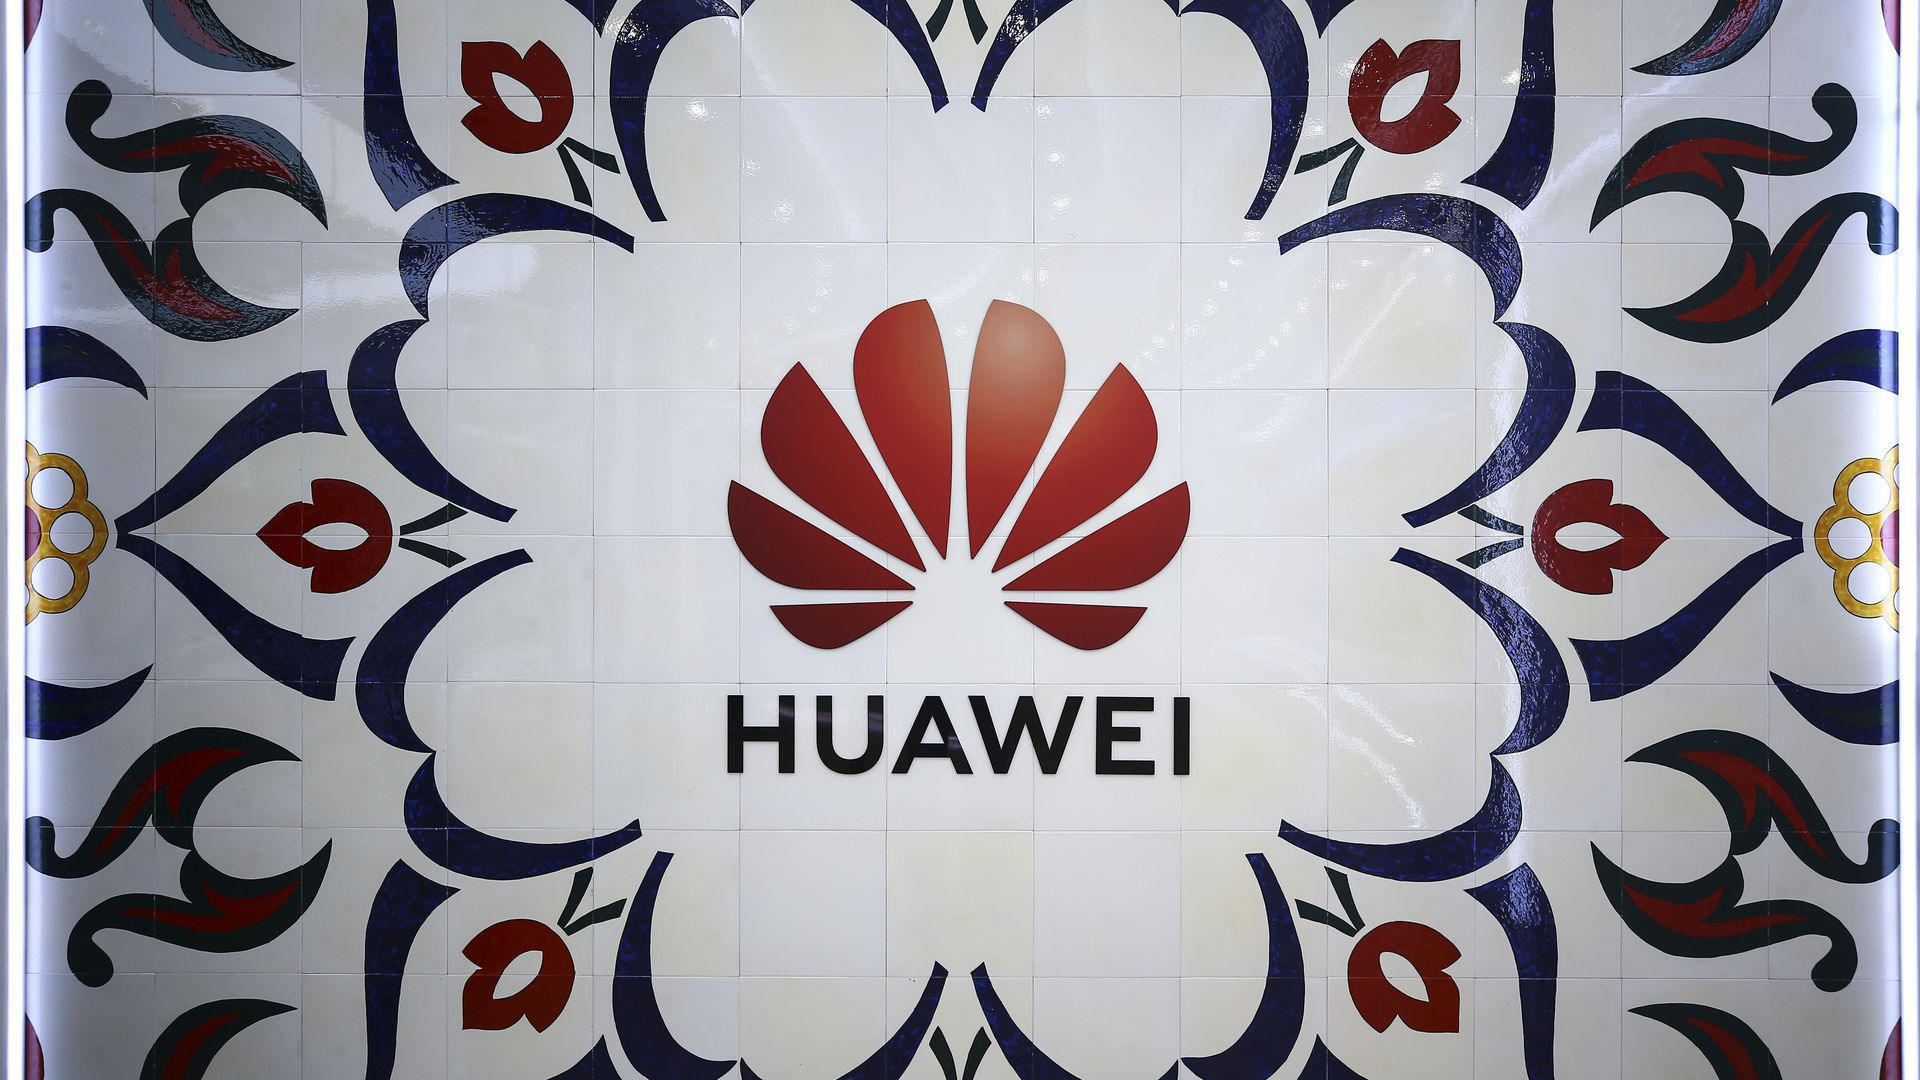 The Huawei logo, taken from the firm's Istanbul office.